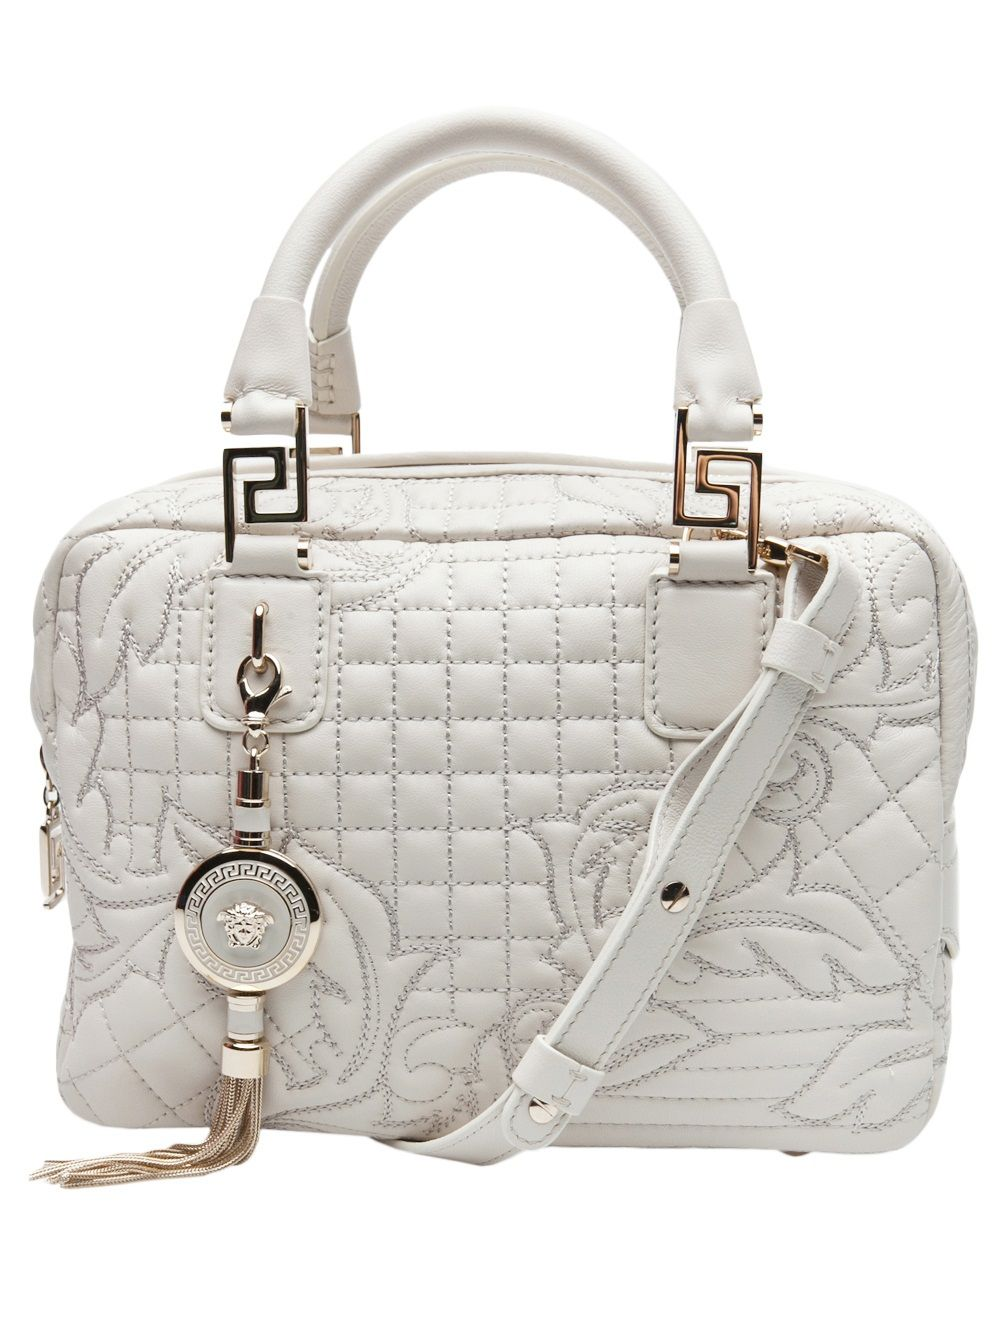 a3921953f724 Versace Vanitas Quilted Bag - David Lawrence - farfetch.com